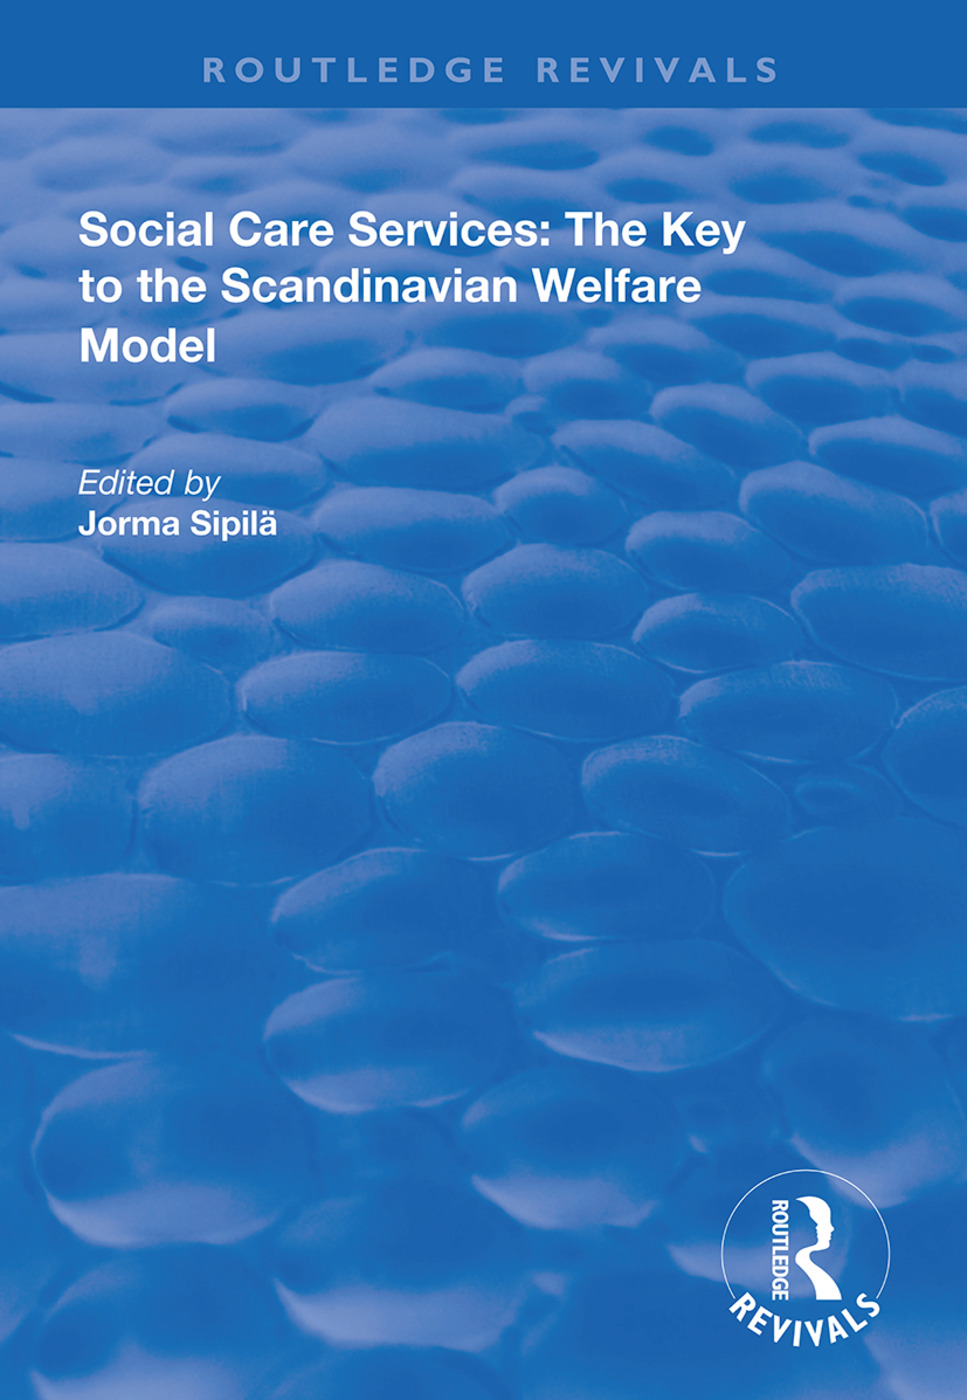 Social Care Services: The Key to the Scandinavian Welfare Model